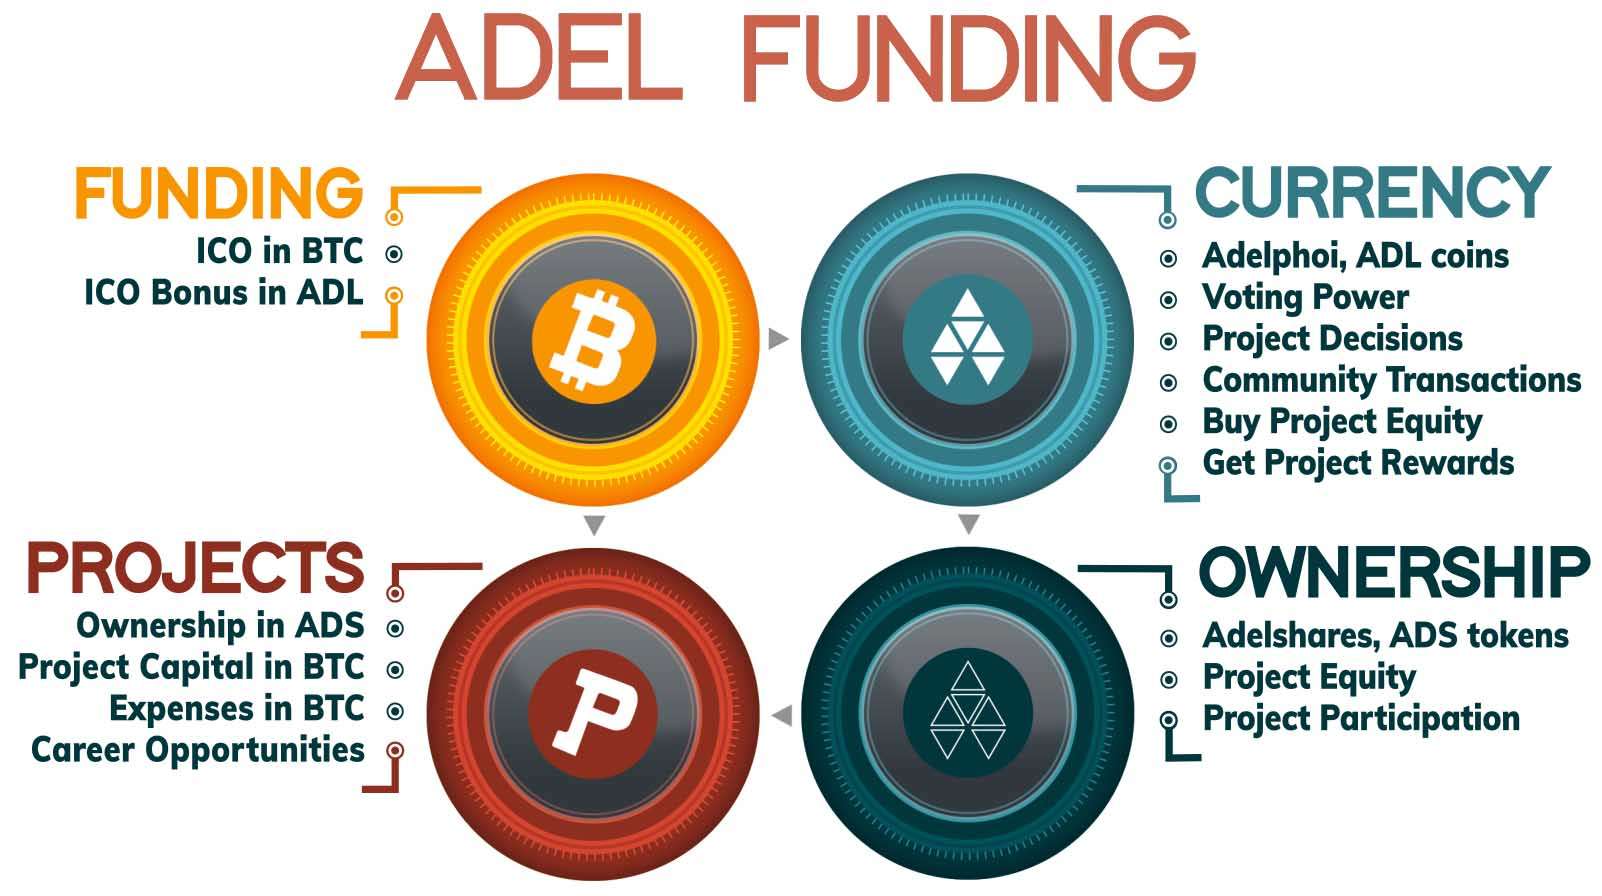 Adel ▲ Opinion ▲ The Next Evolution in Funding Innovation